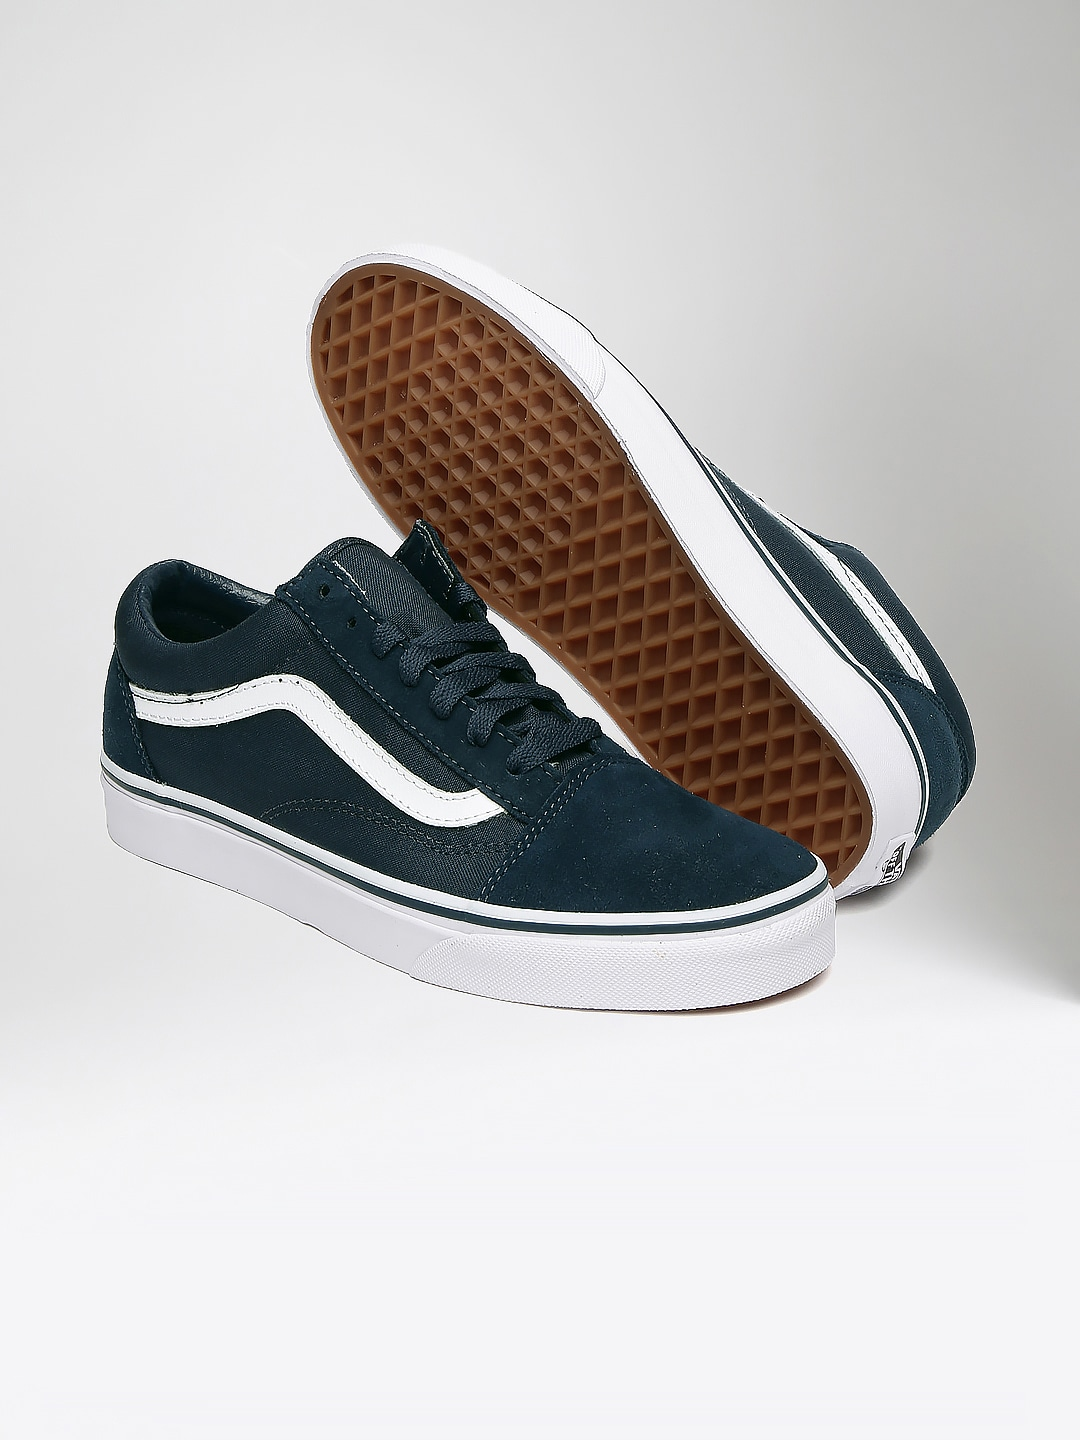 a1150a98257c67 Acquista vans hamburger - OFF61% sconti